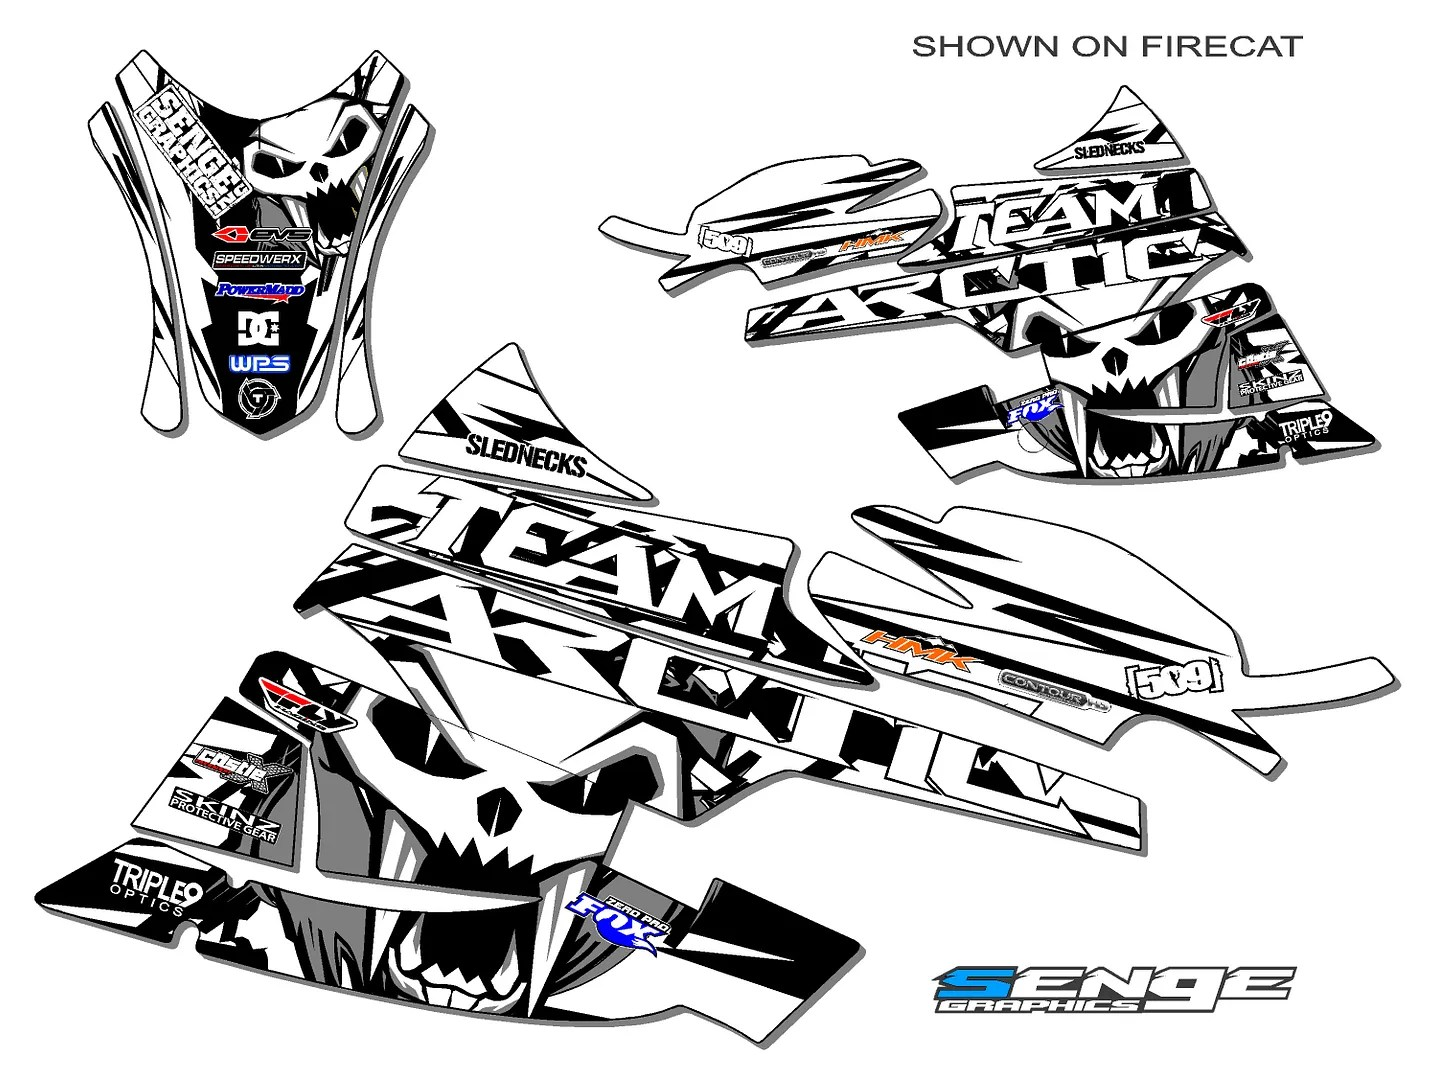 2003 2004 2005 2006 ARCTIC CAT FIRECAT SABERCAT GRAPHICS